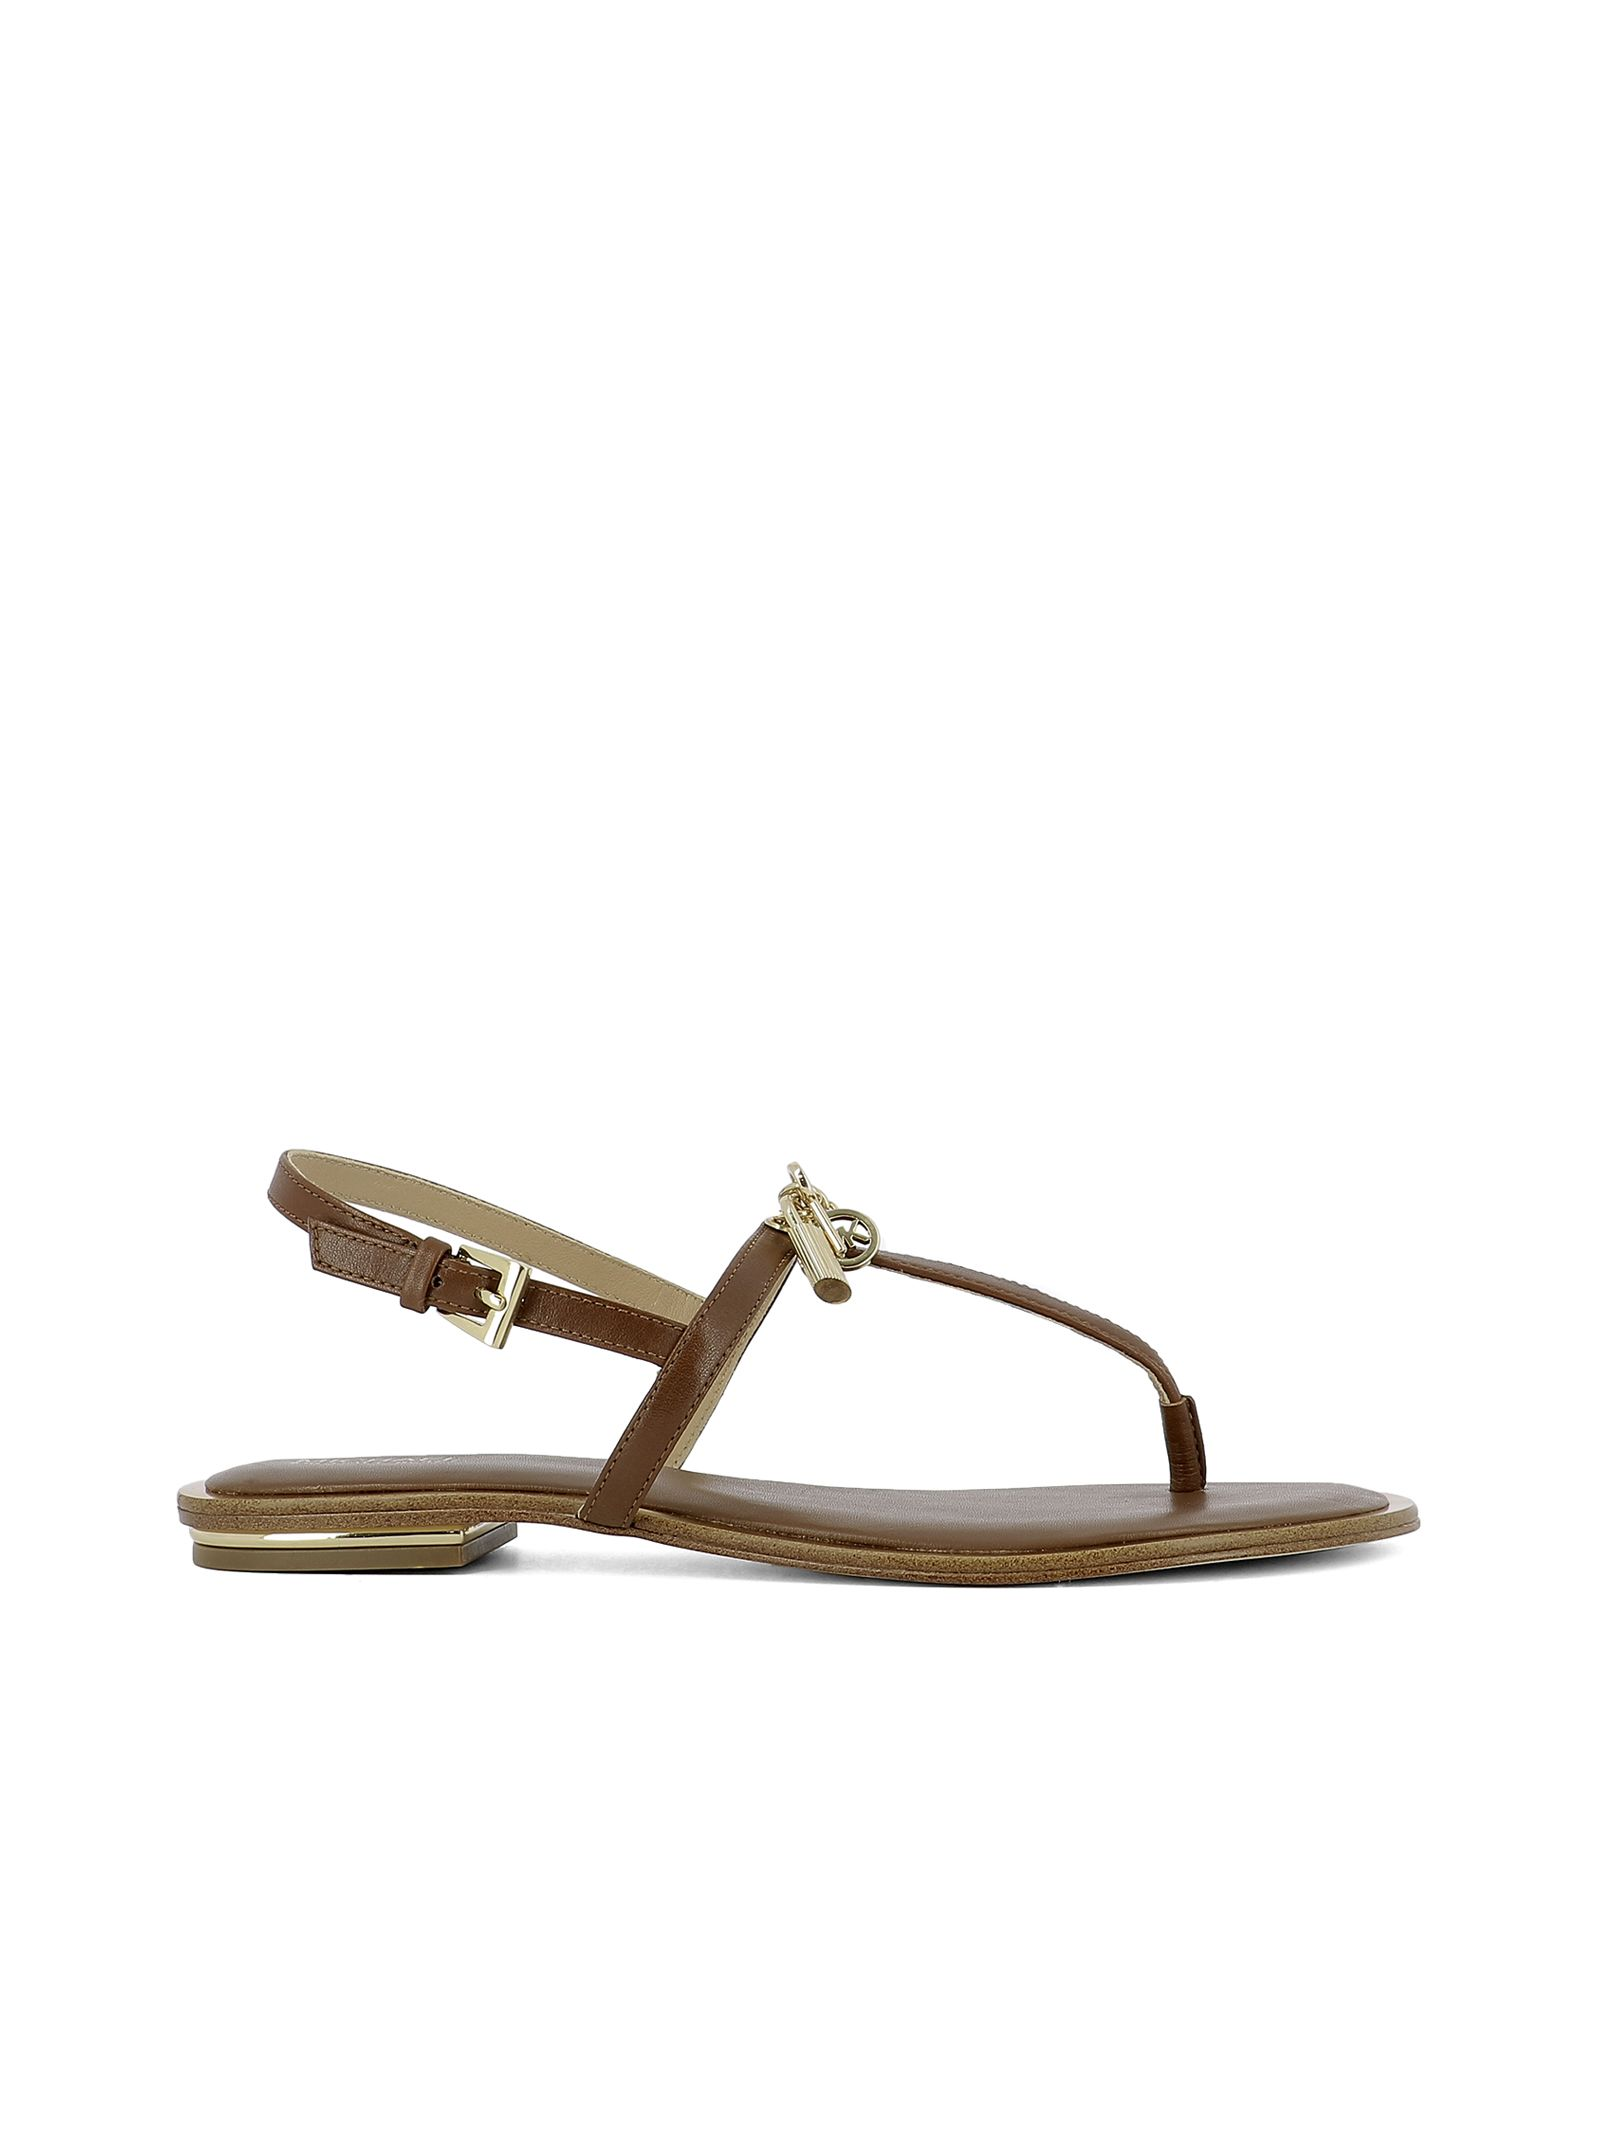 michael kors female brown leather sandals